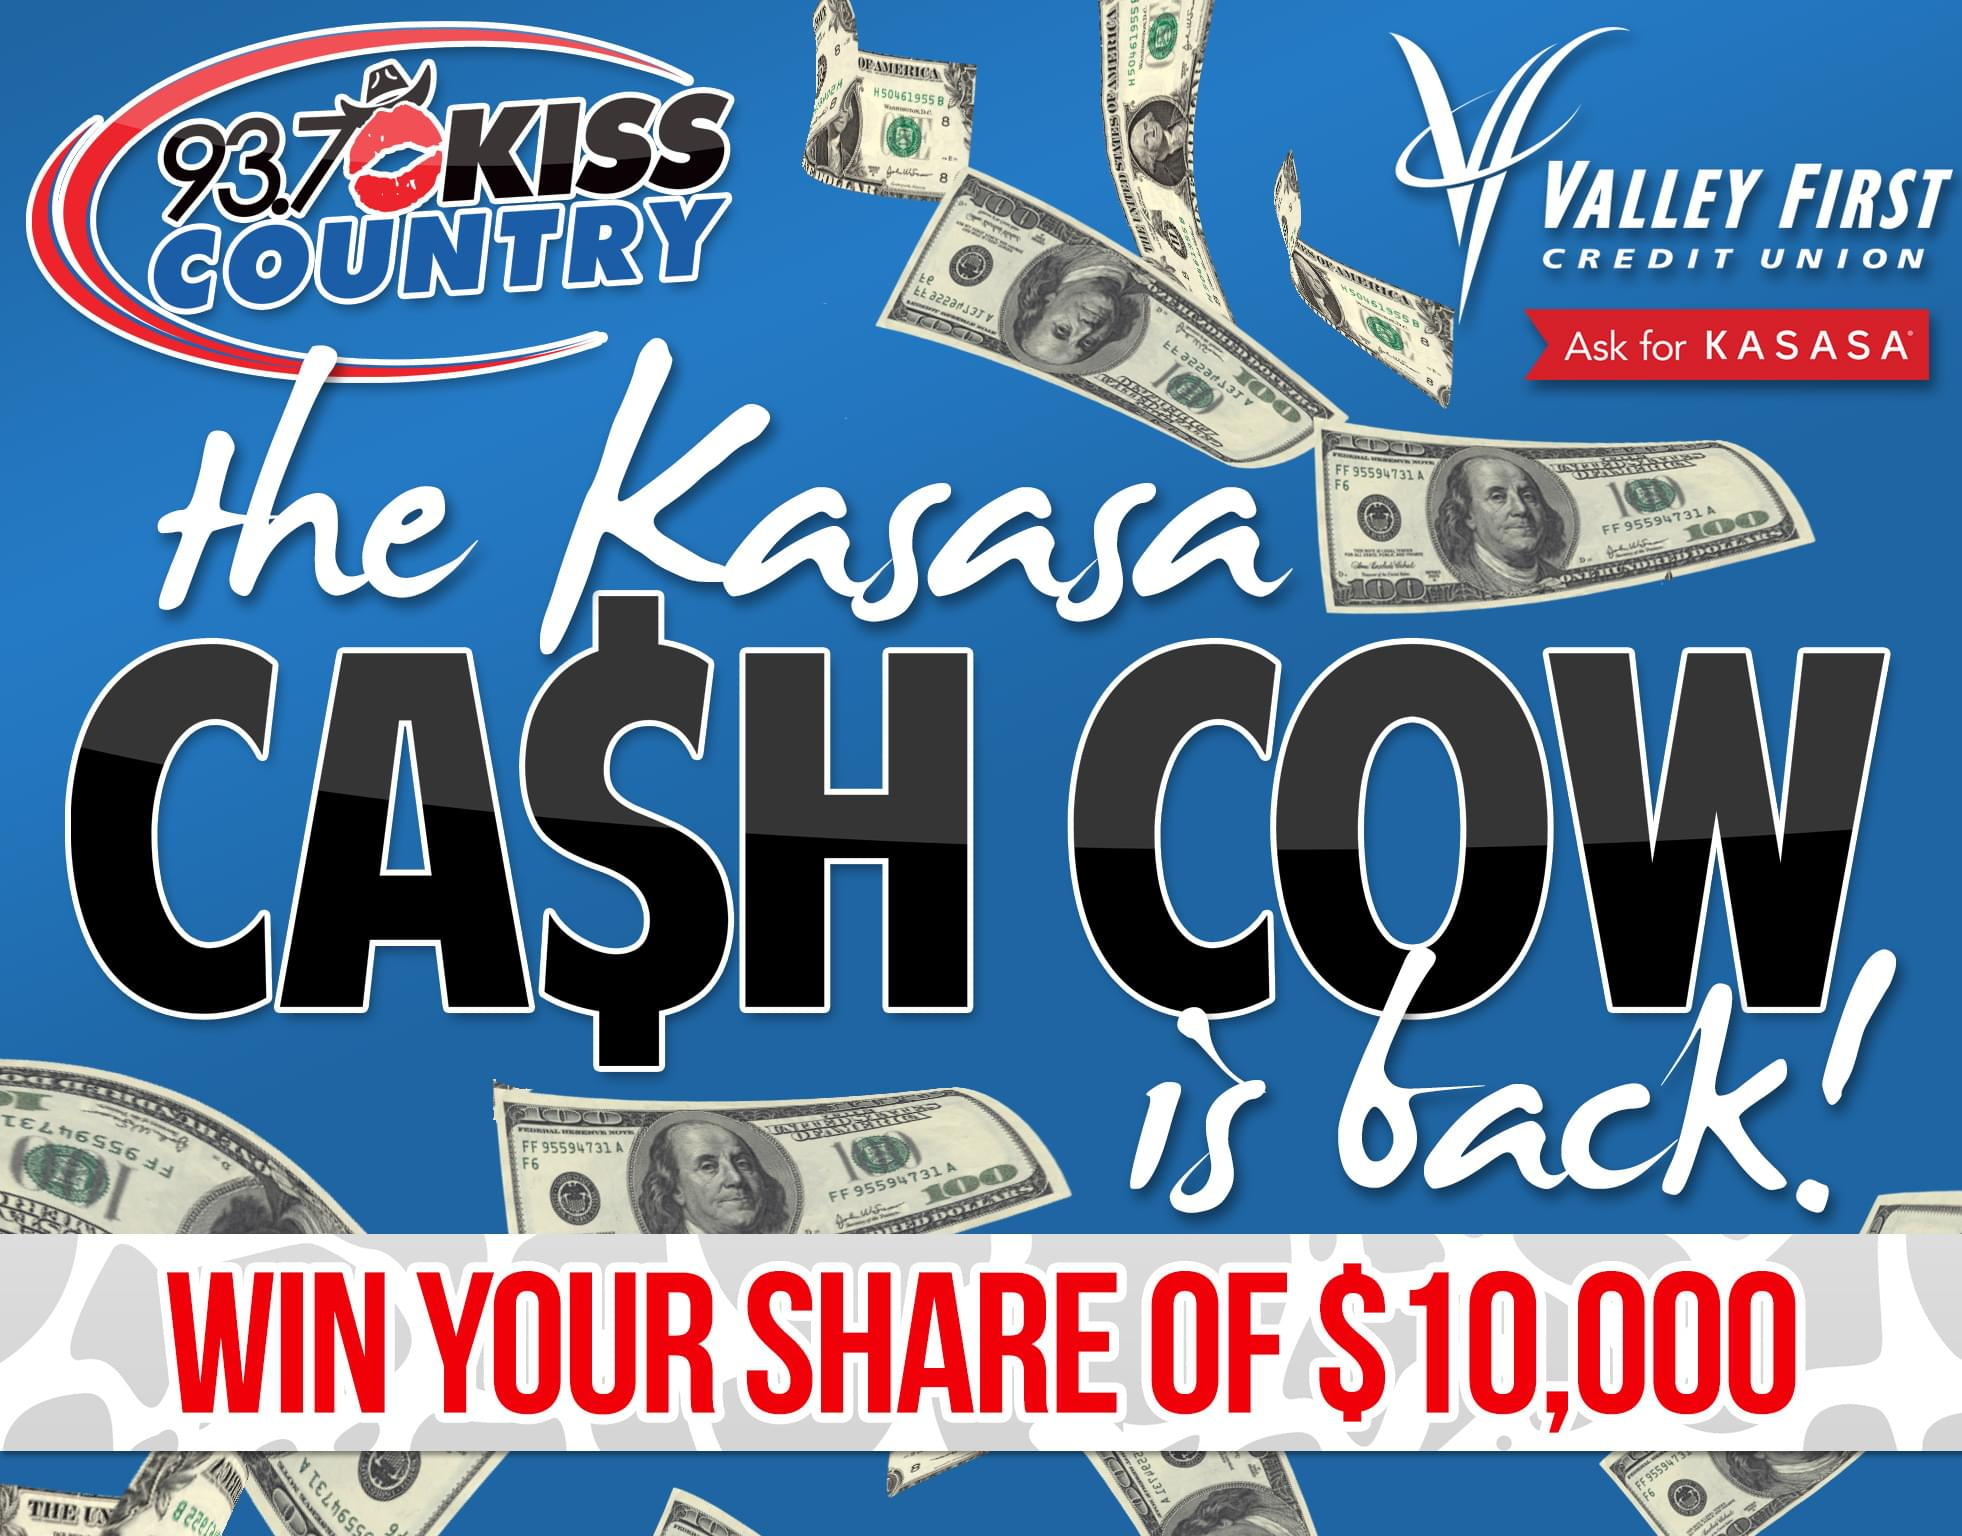 Kiss Country Kasasa Cash Cow Contest Rules